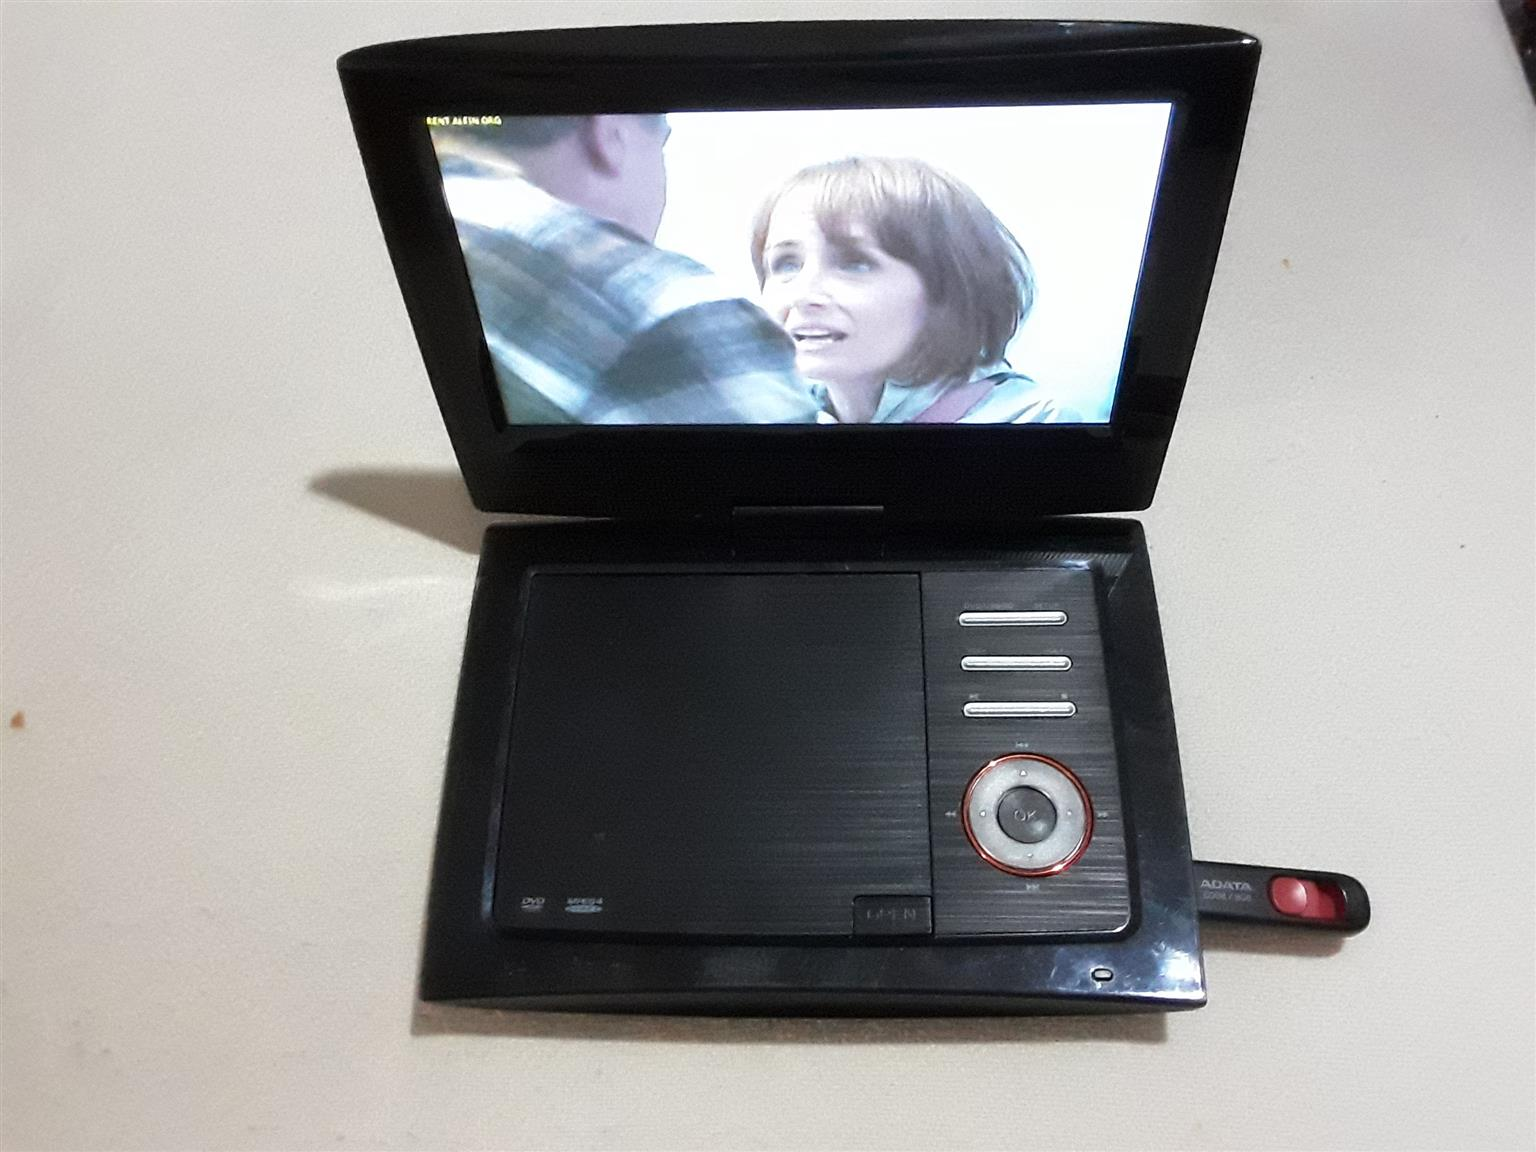 """Sansui LCD/DVD Player PD1004-9"""" . USB Port for Playing Flash Drives, Composite Audio Video Out,"""